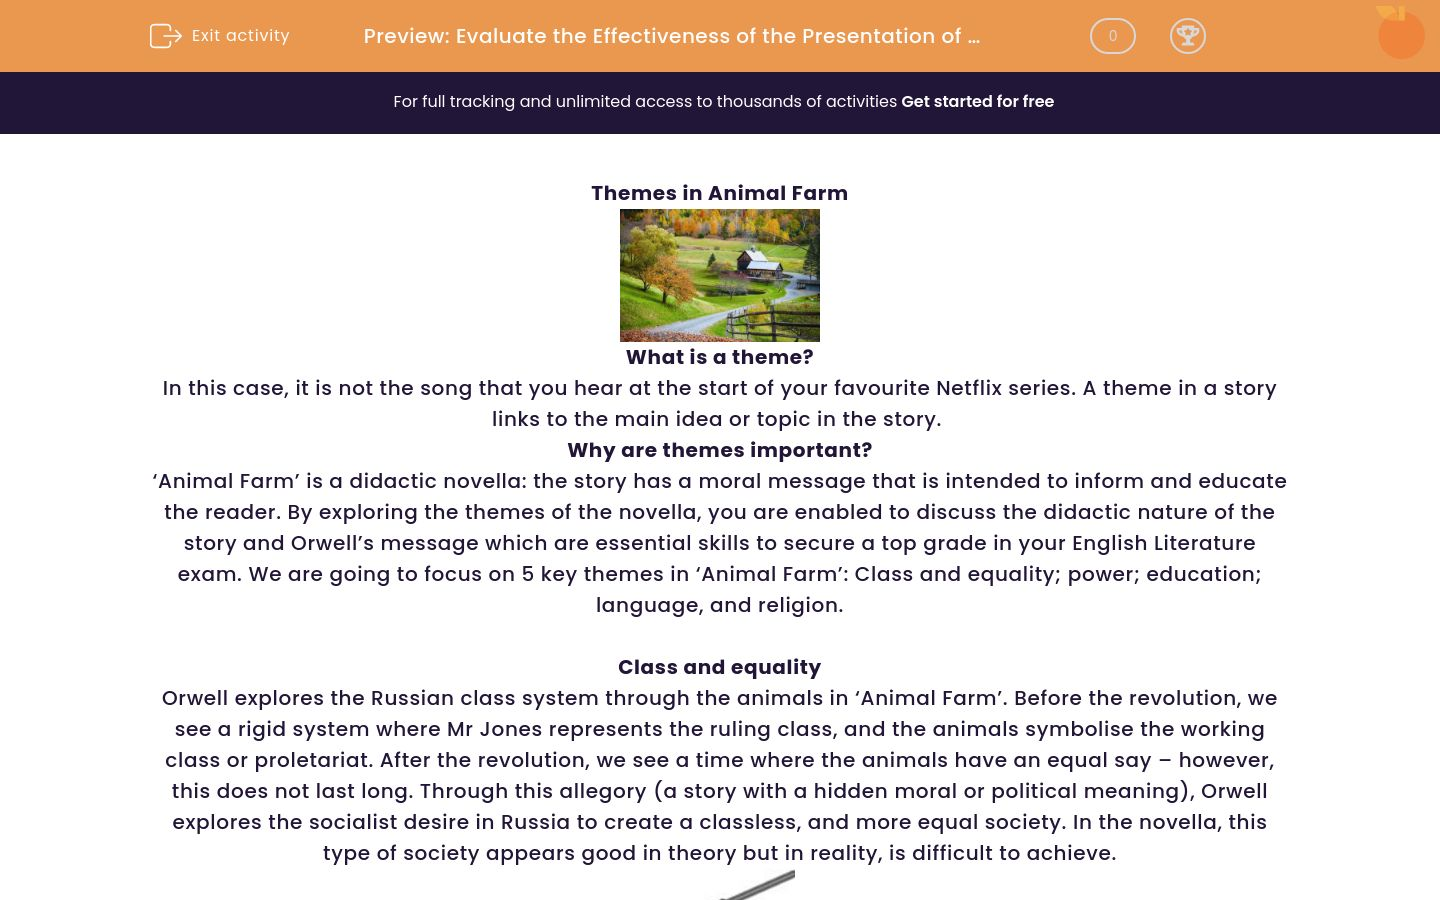 'Evaluate the Effectiveness of the Presentation of Themes in 'Animal Farm'' worksheet